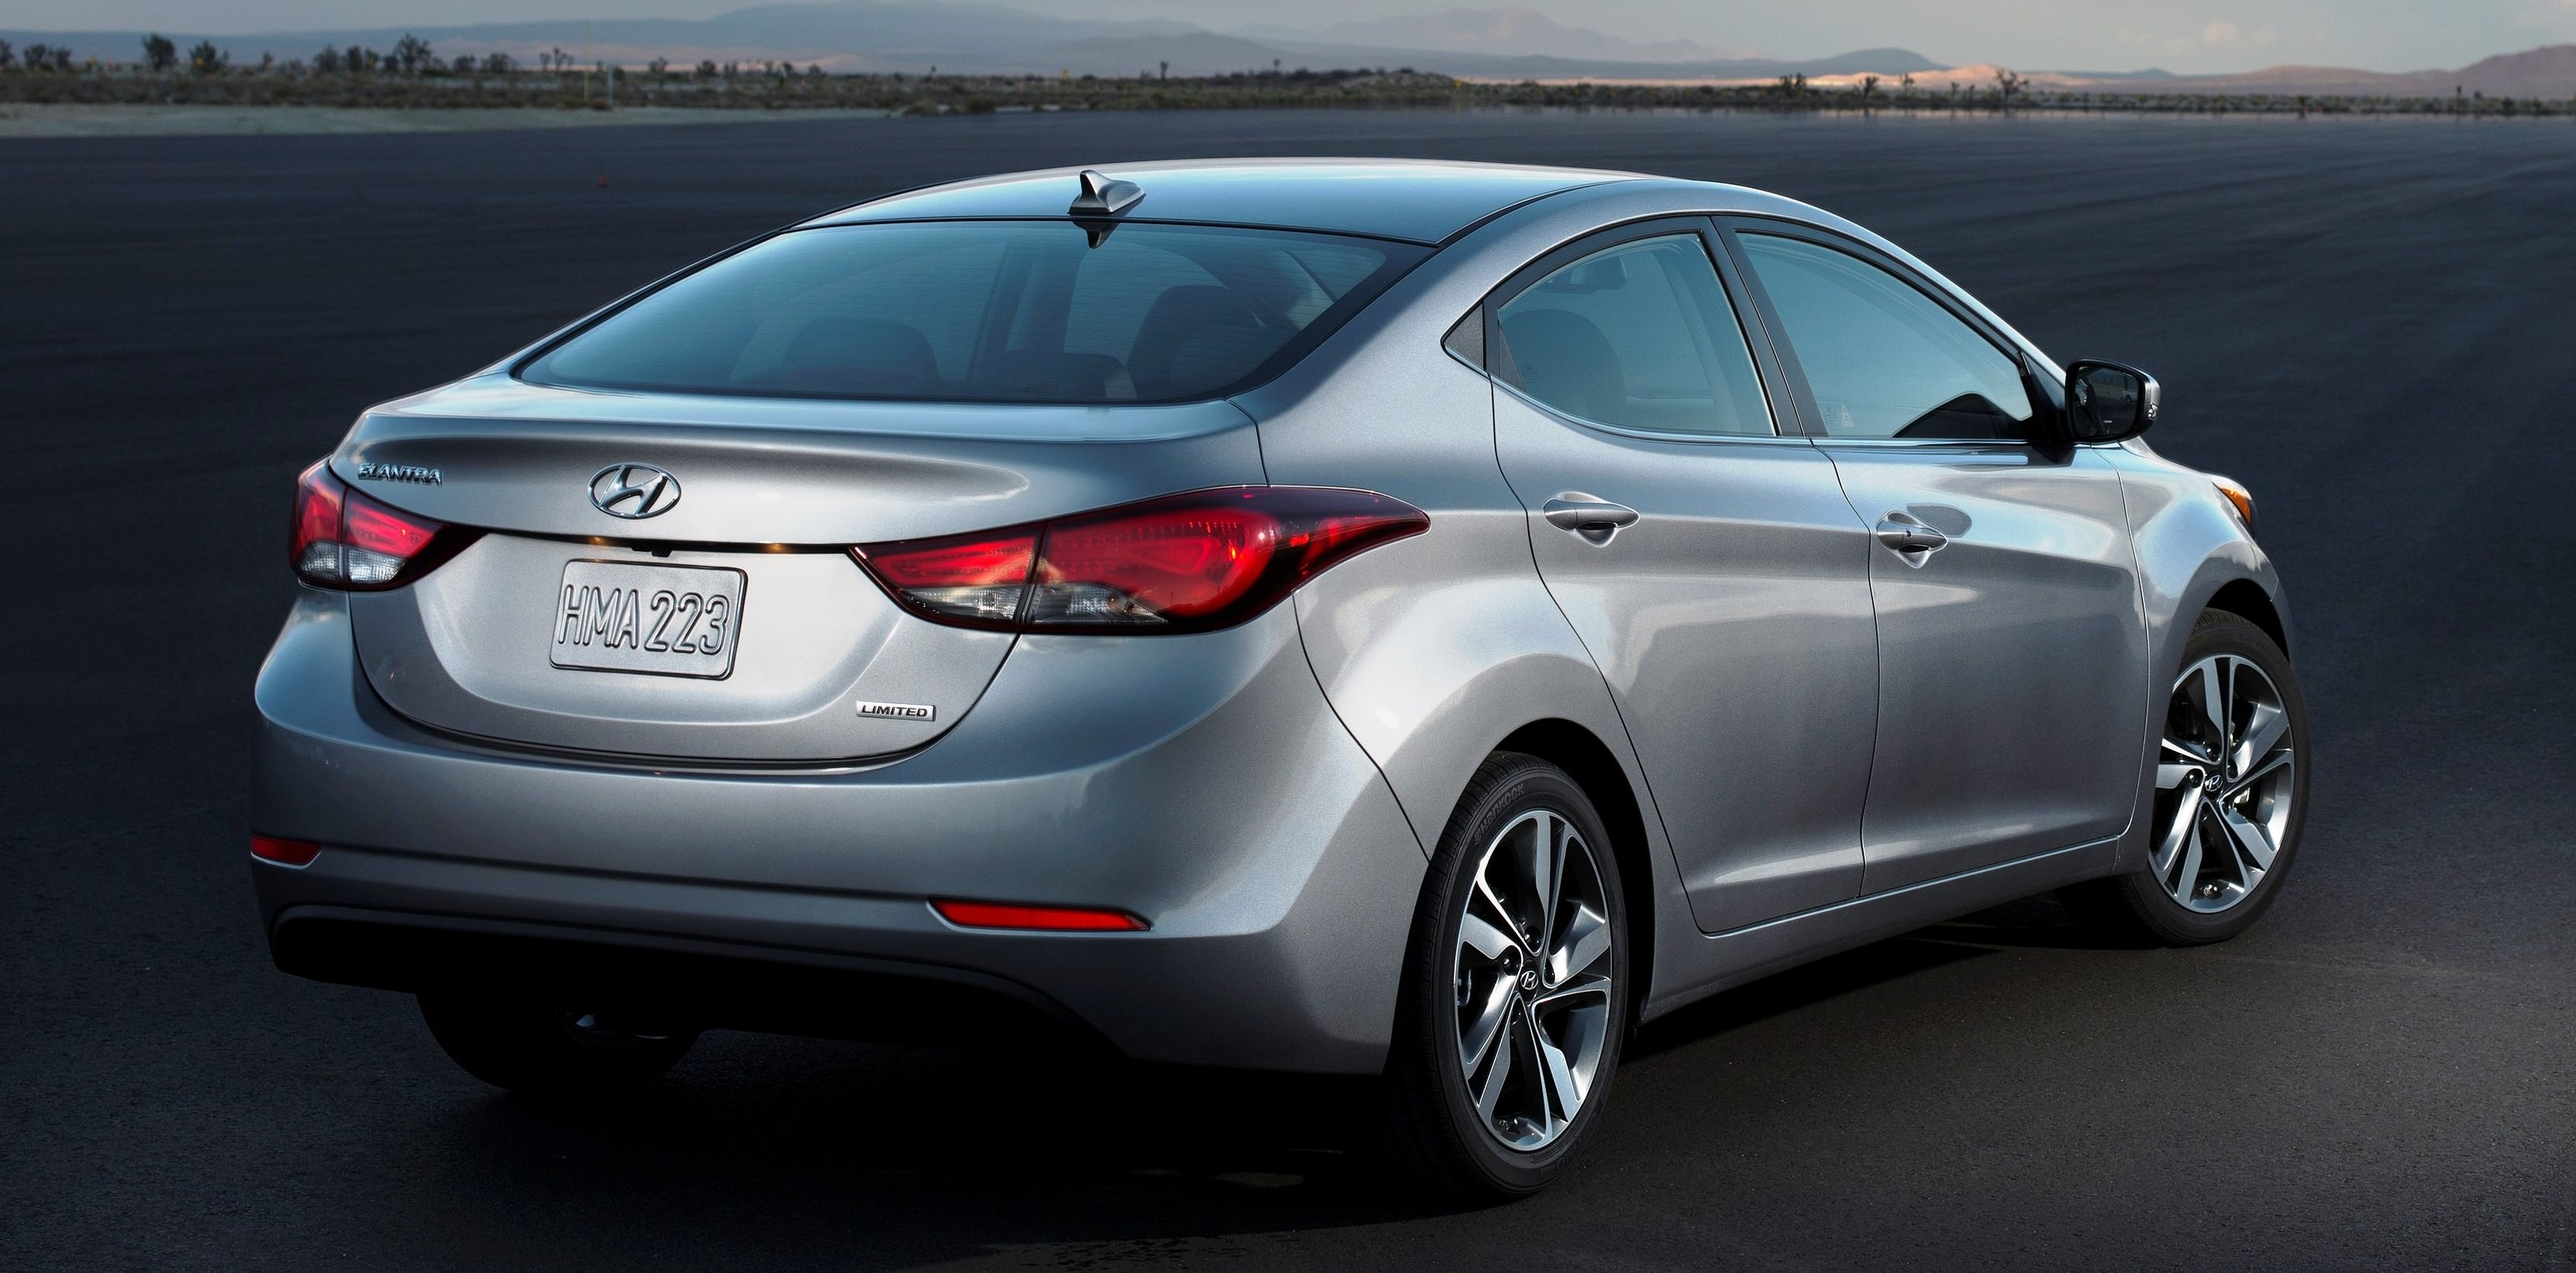 Hyundai Elantra: Vehicle data collection and event data recorders